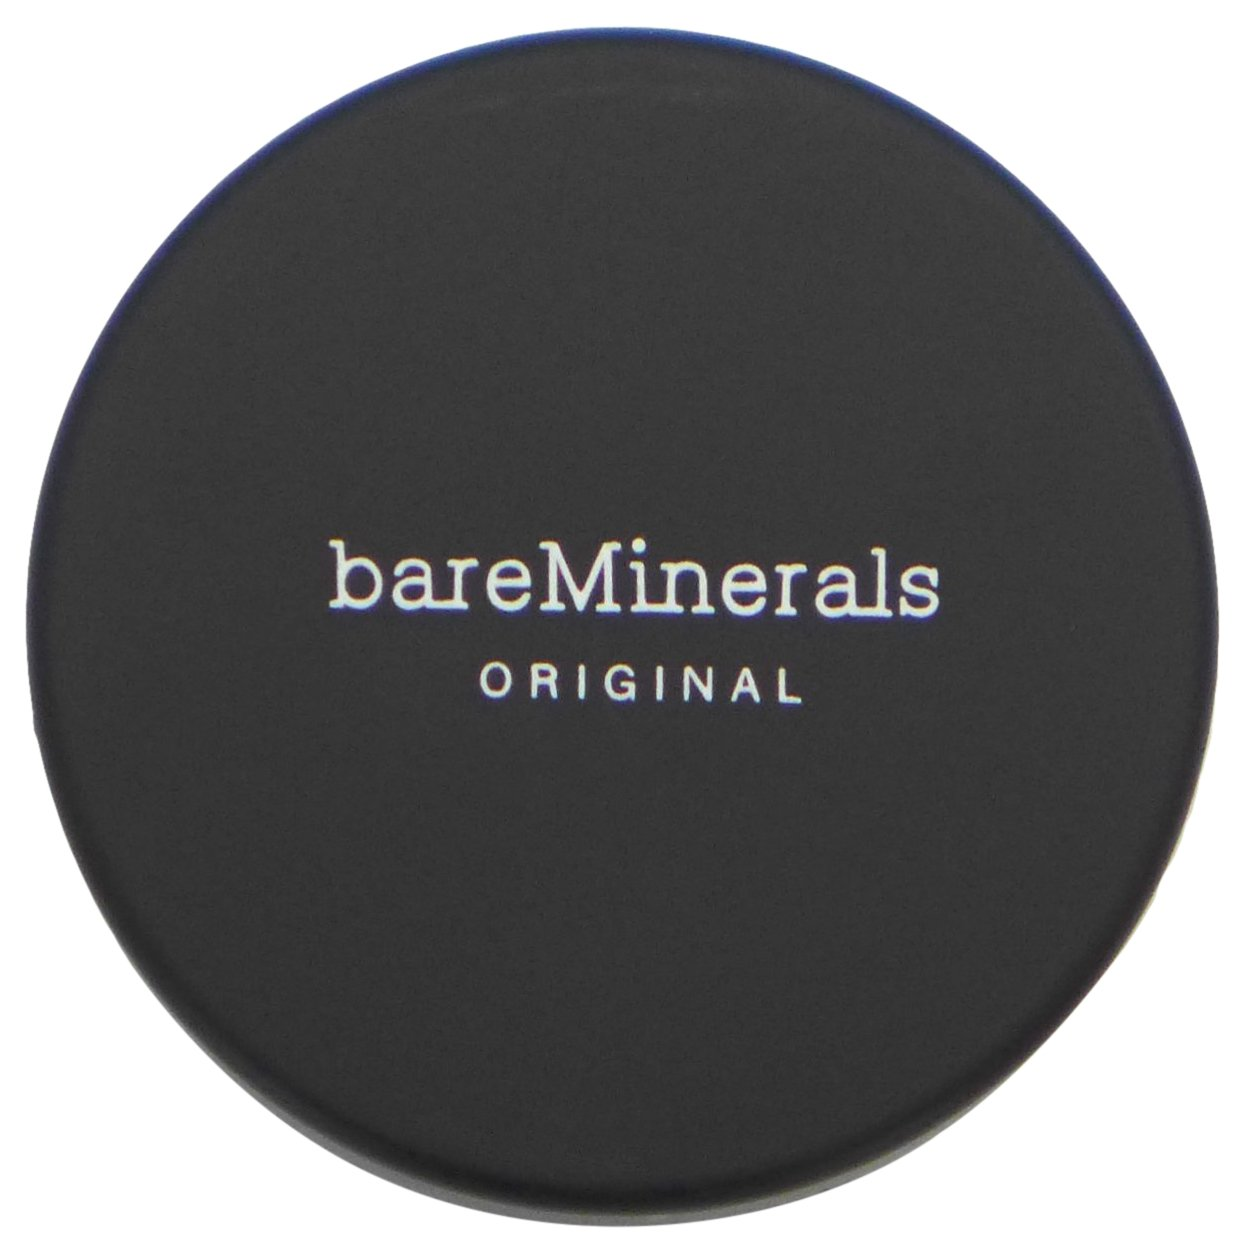 BareMinerals ORIGINAL Foundation Broad Spectrum SPF 15 - Medium - 8g/0.28 oz. Bare Minerals 4241